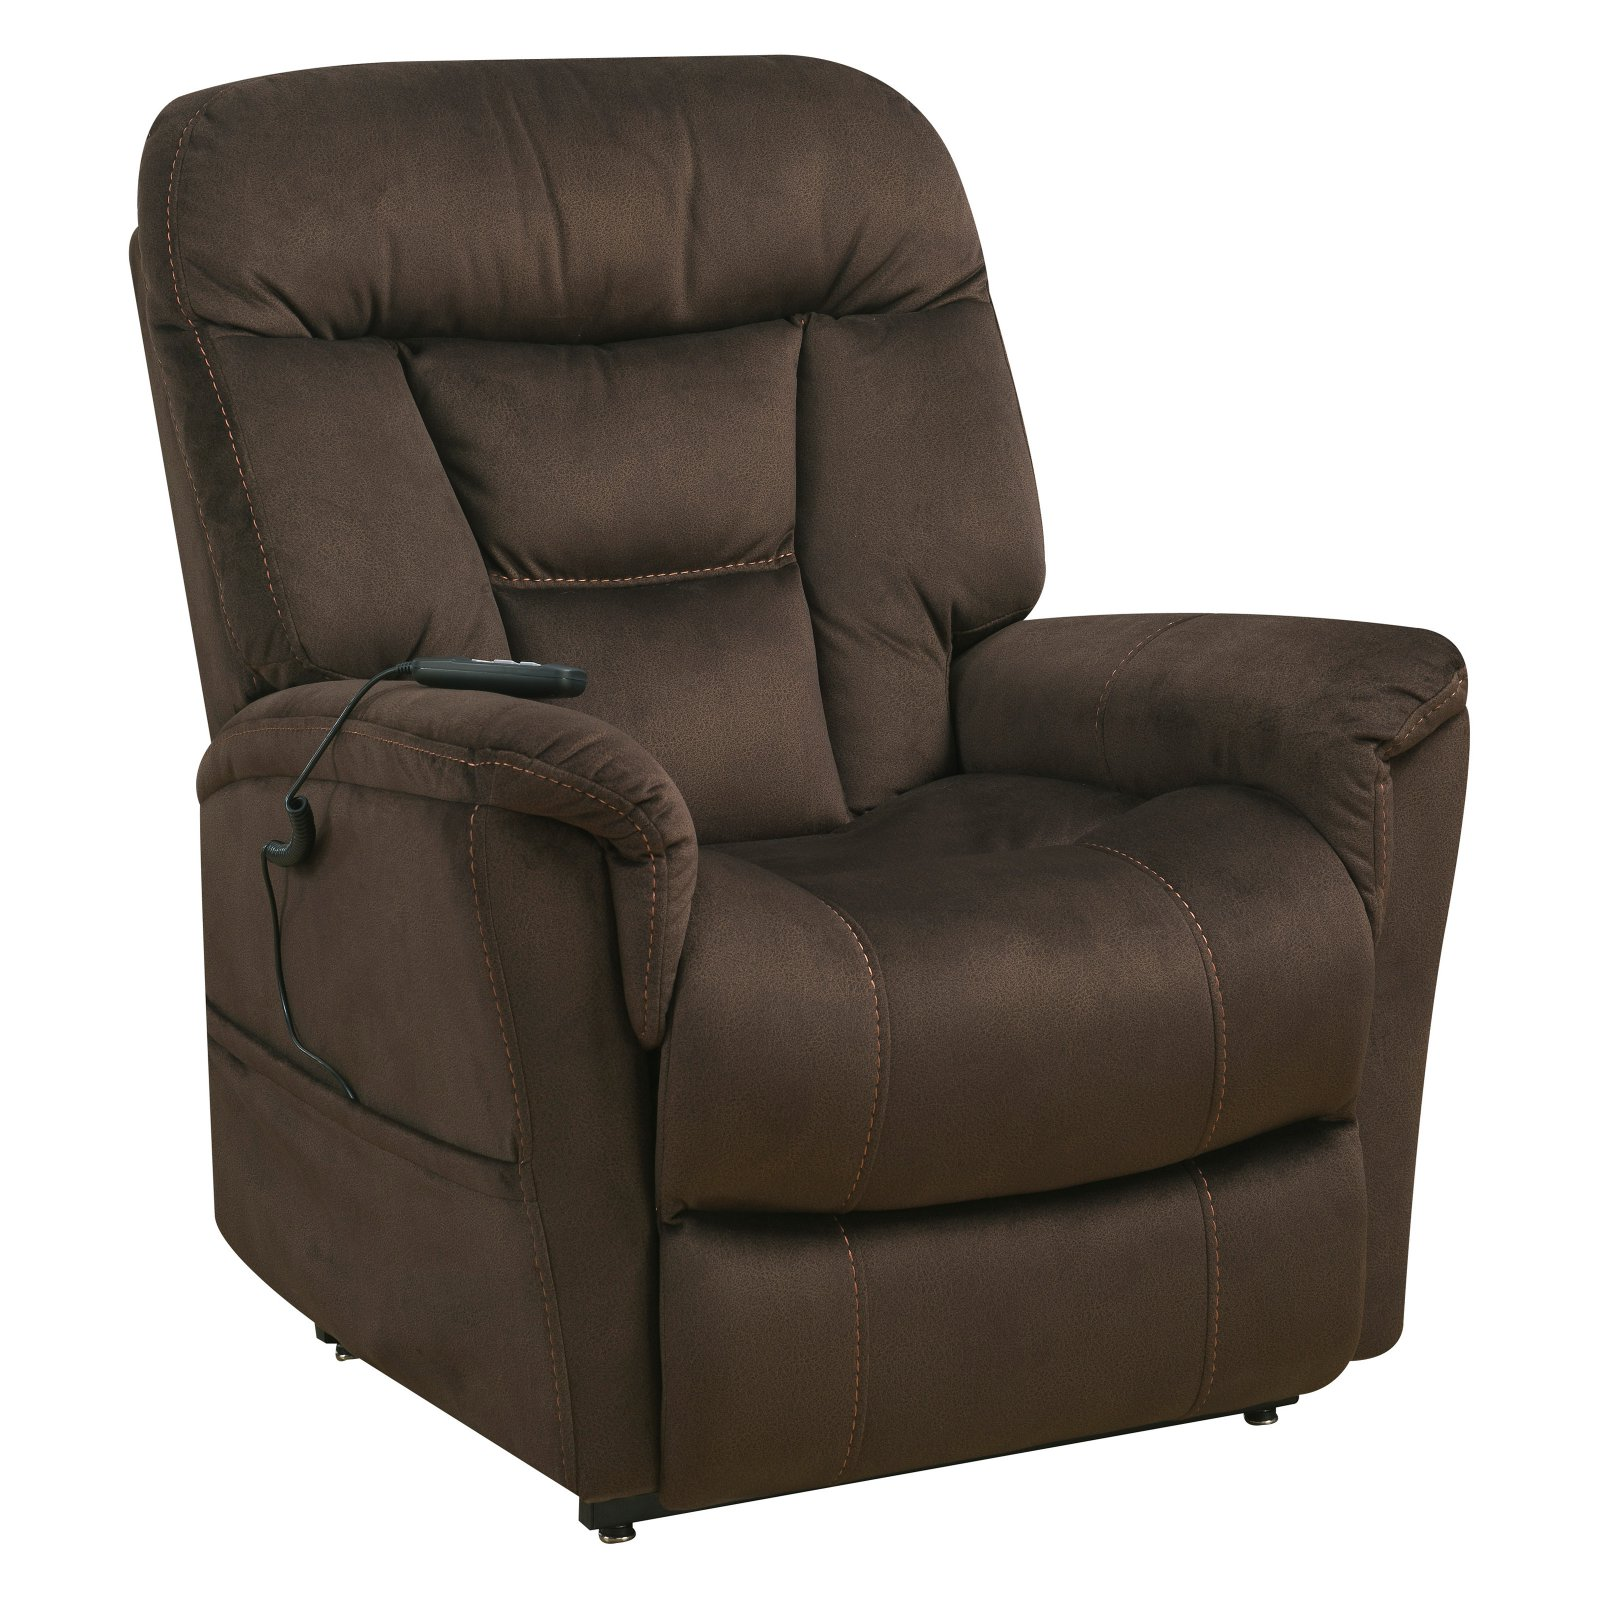 Right2Home Reclining 2 Motor Lift Chair